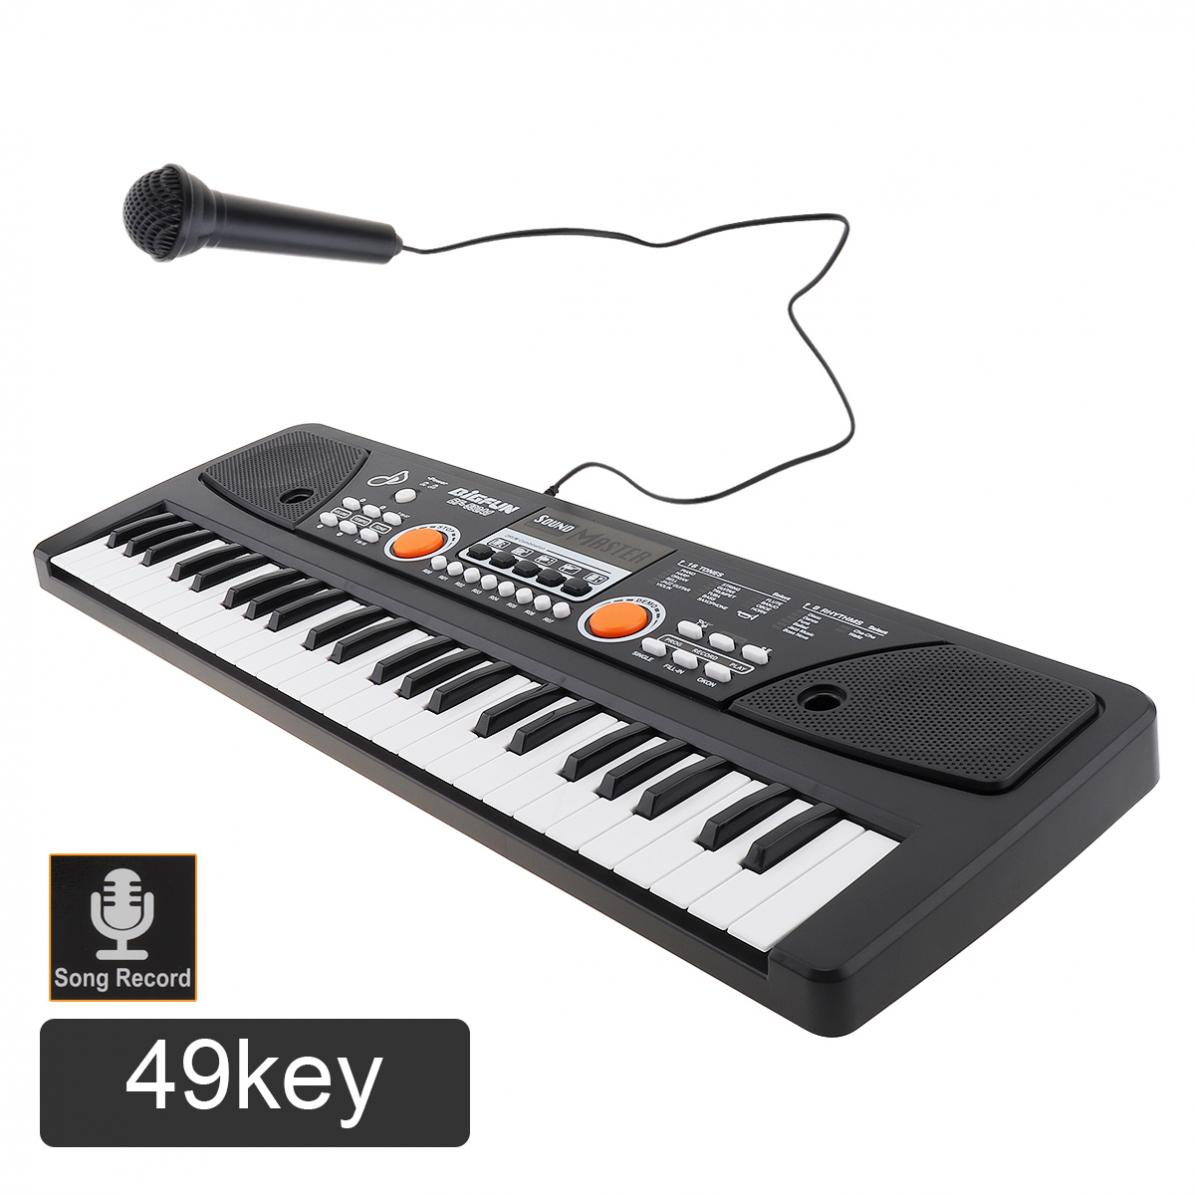 37 / 49 / 54/ /61 Keys Electronic Keyboard Piano Digital Music Key Board with Microphone Children Gift Musical Enlightenment enlarge